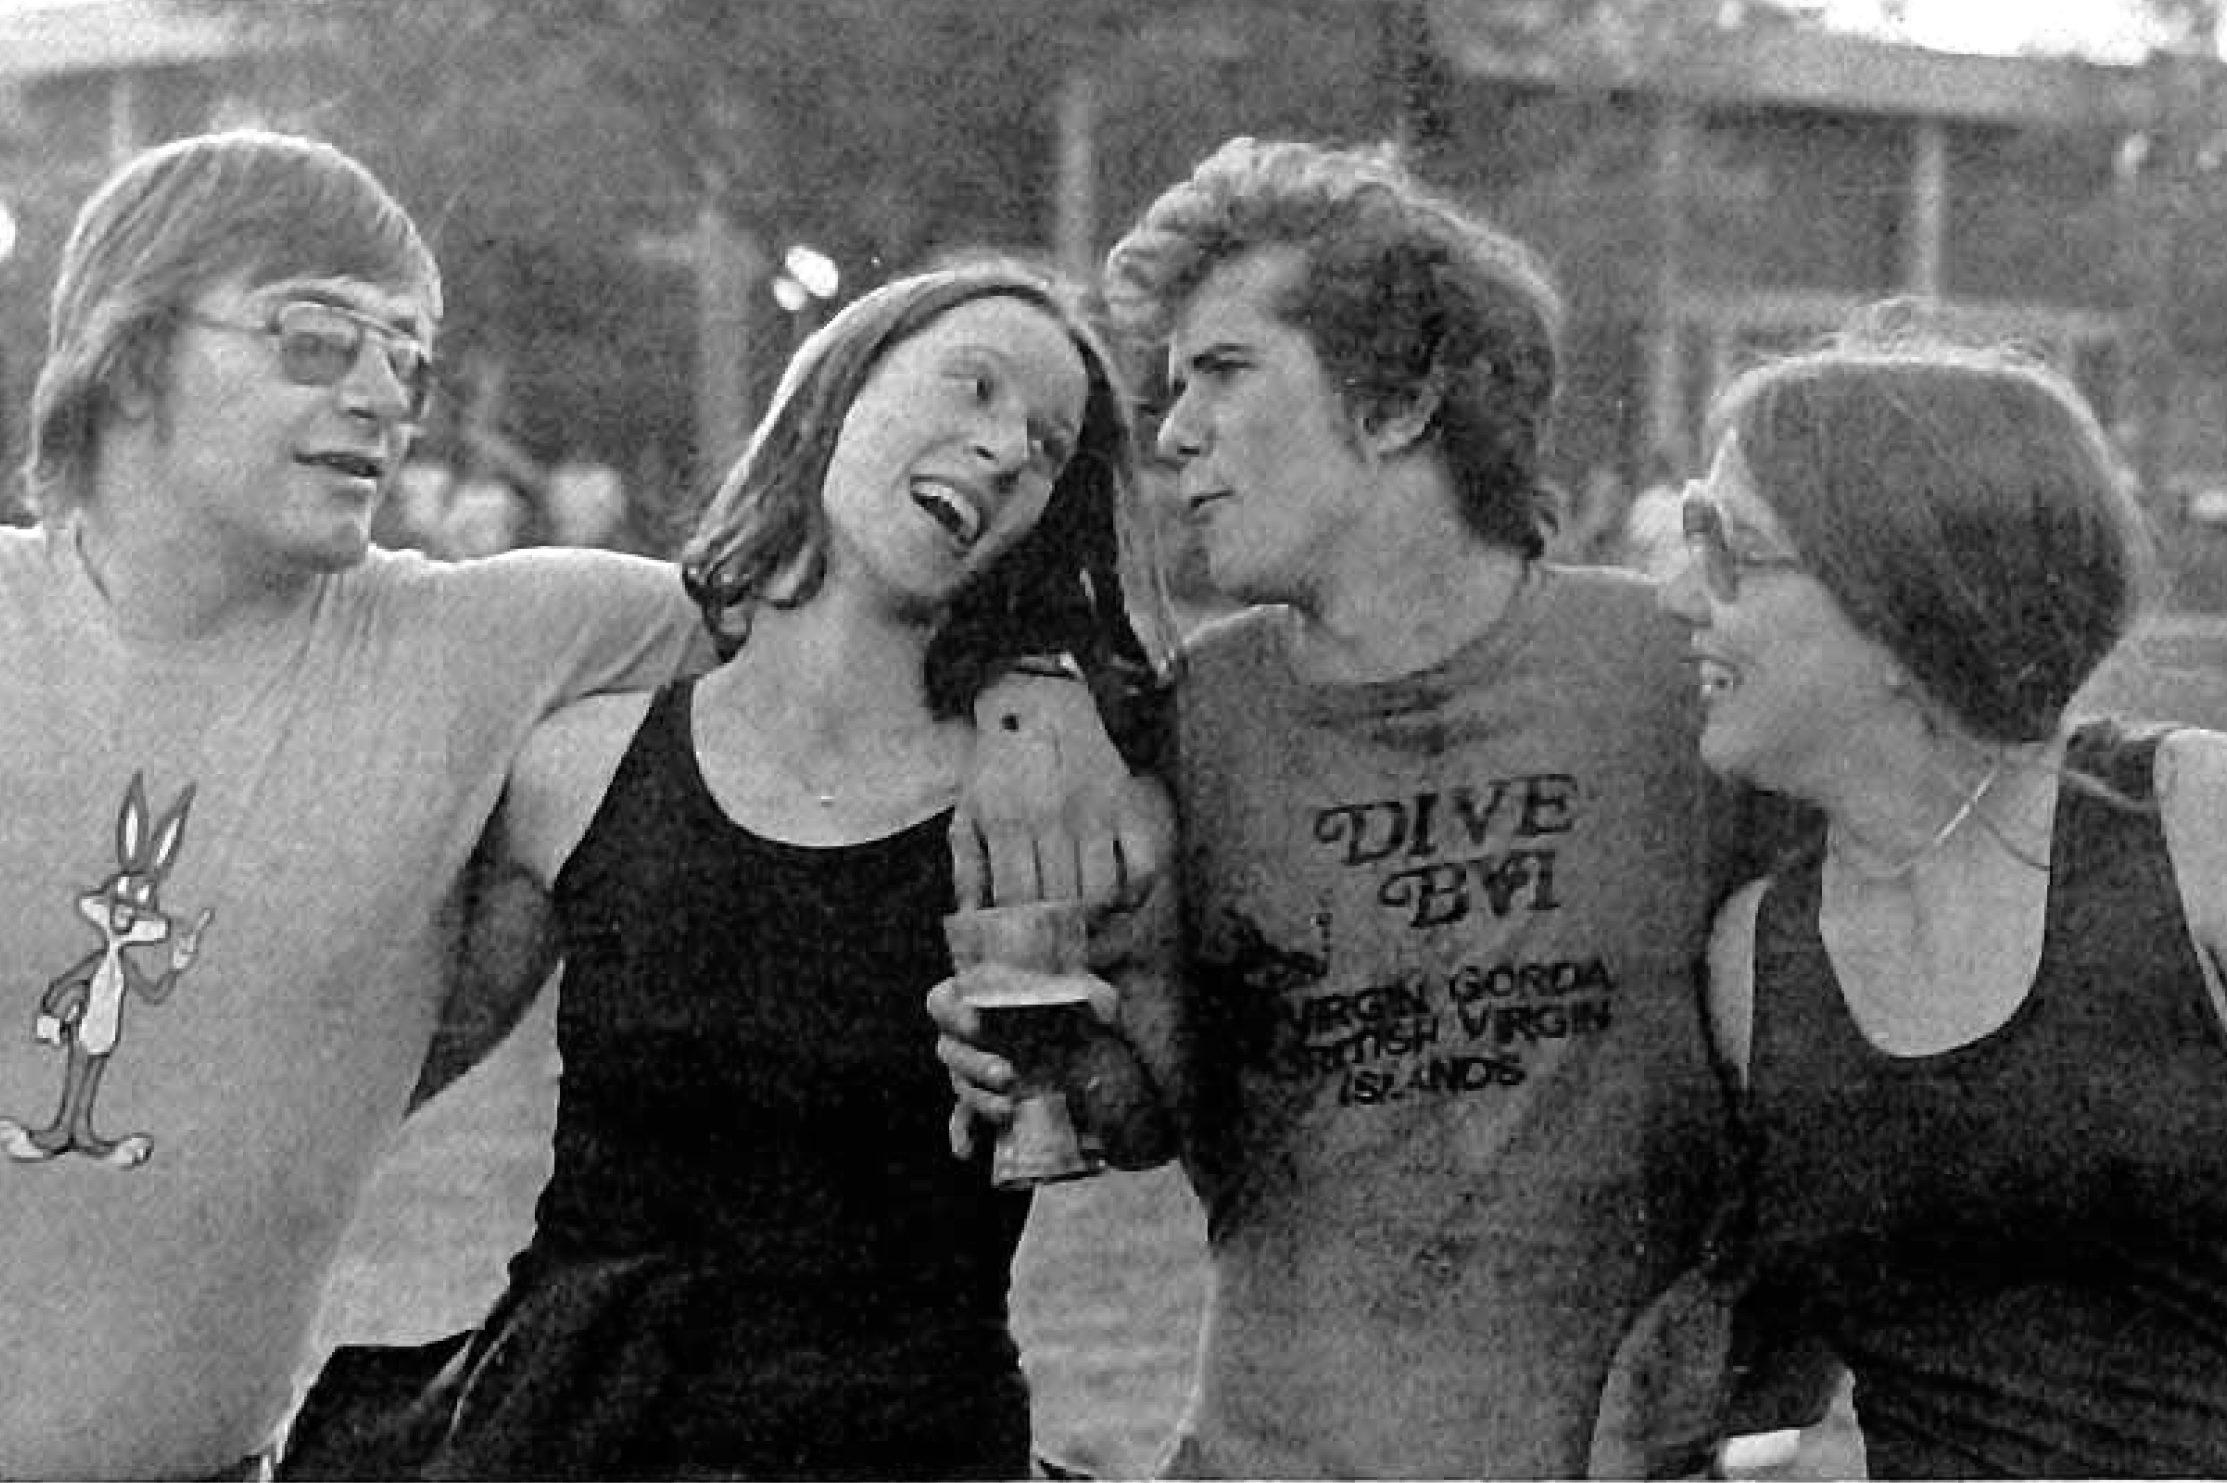 Way Back at Mac: The Best of the Fest